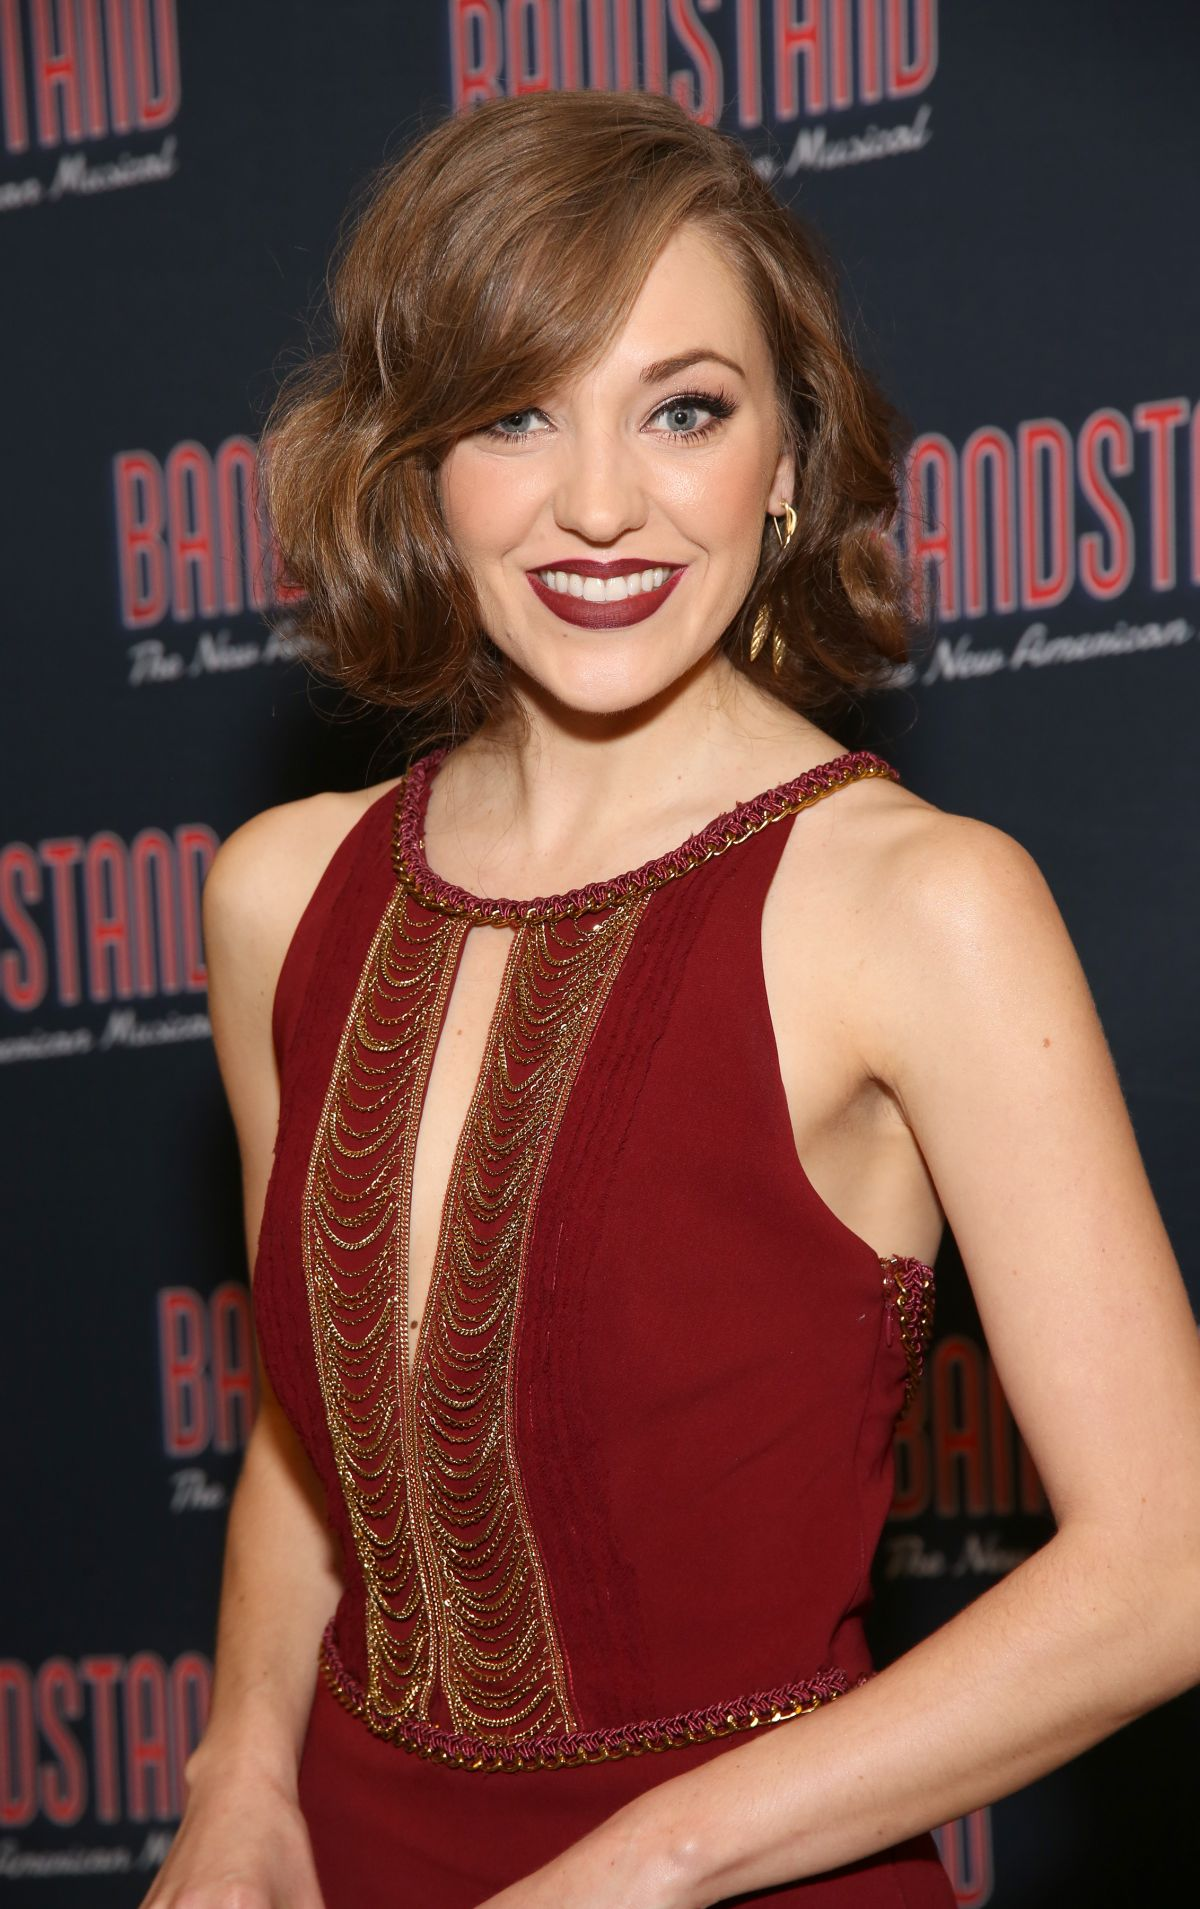 LAURA OSNES at Bandstand Broadway Opening Night After Party in New York 04/26/2017